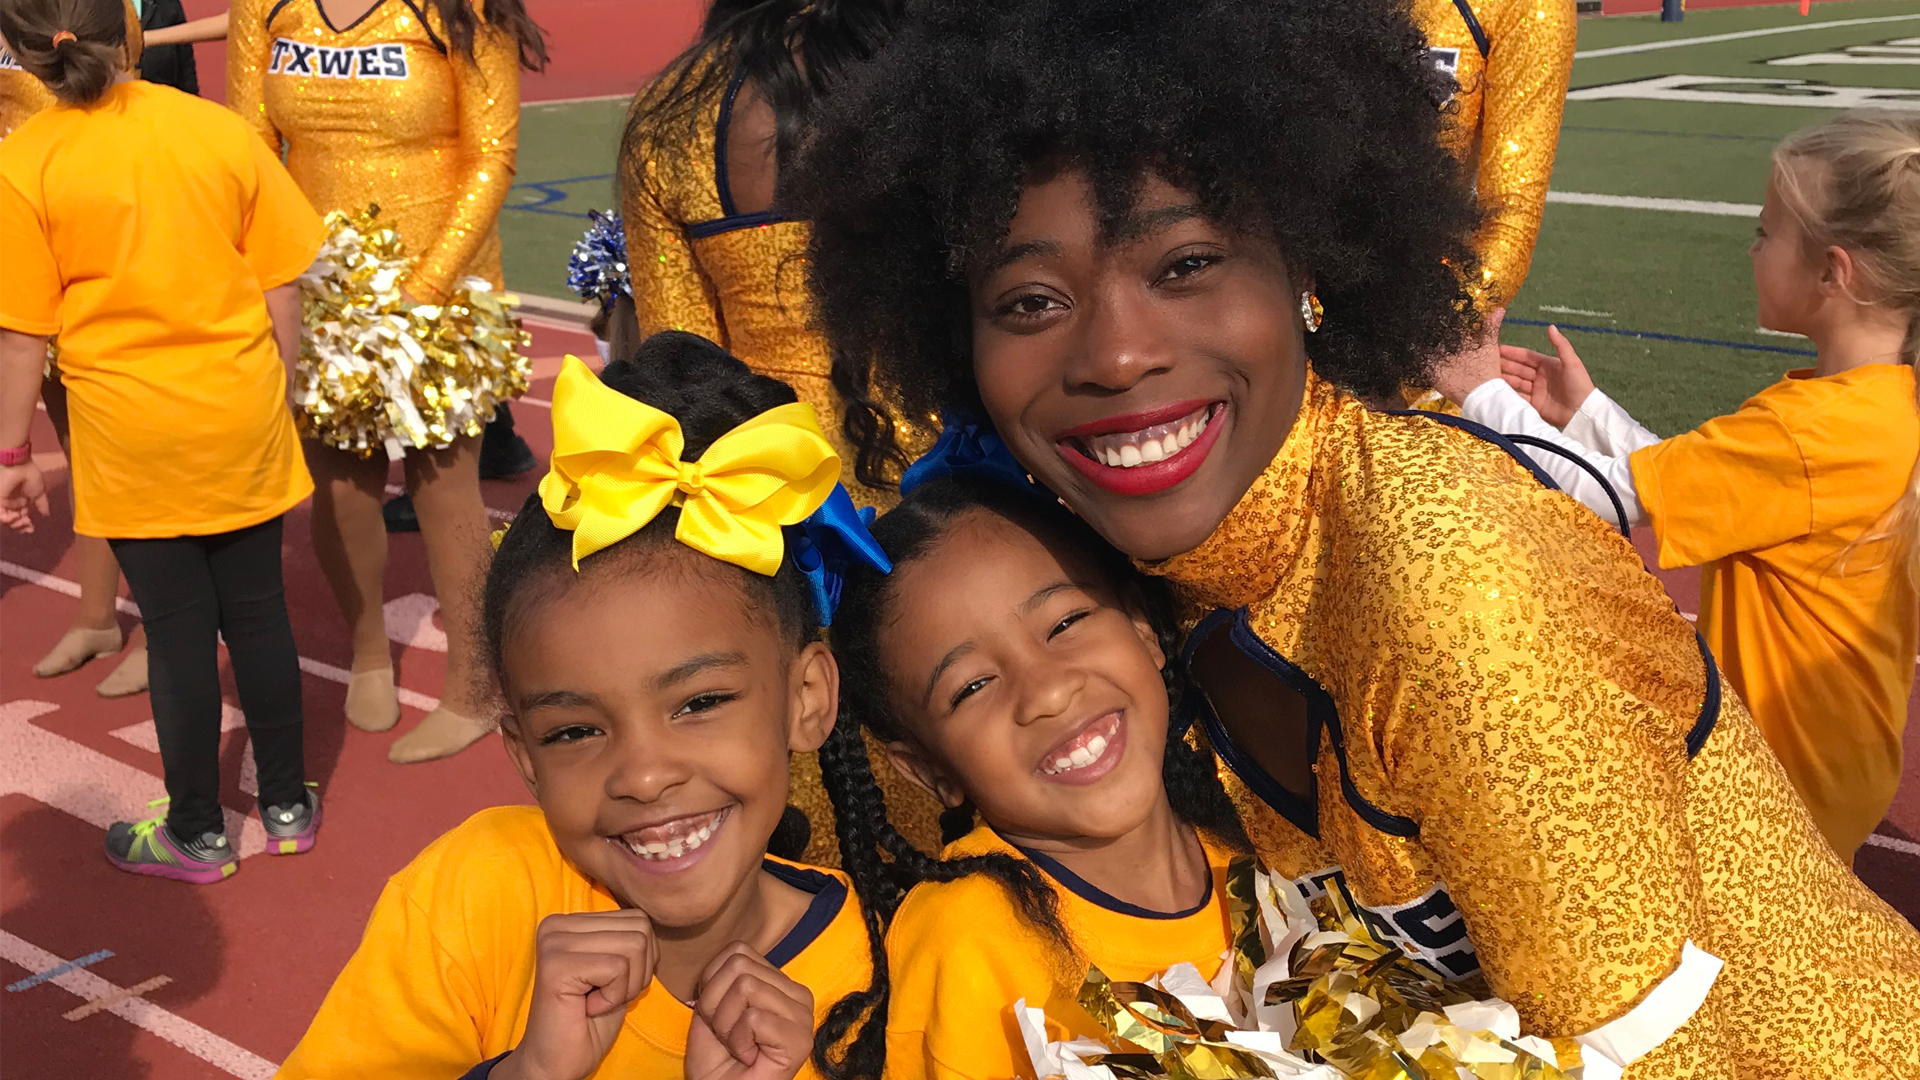 Gold Line Dances Youth Clinic set for Nov. 2 - Texas Wesleyan University  Athletics